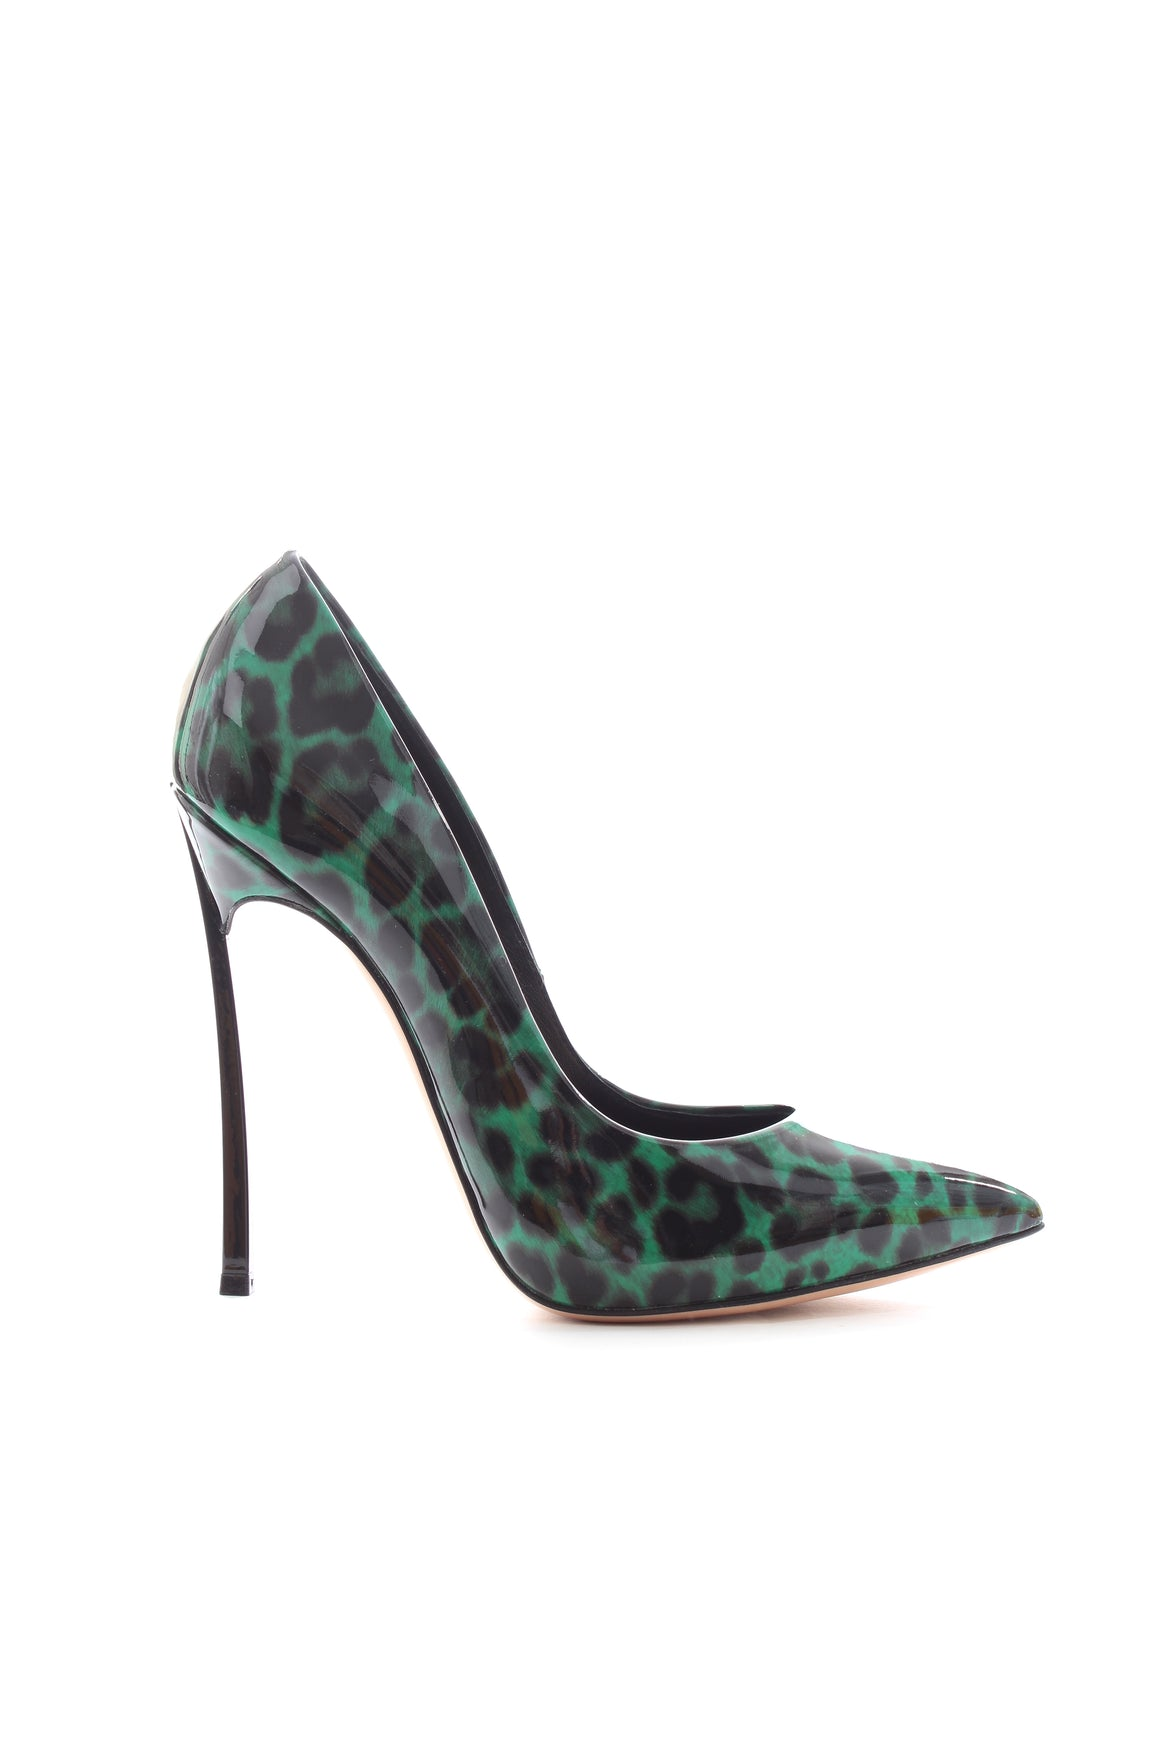 Casadei 'Blade' Jungle Love Pumps - Current Season Collection